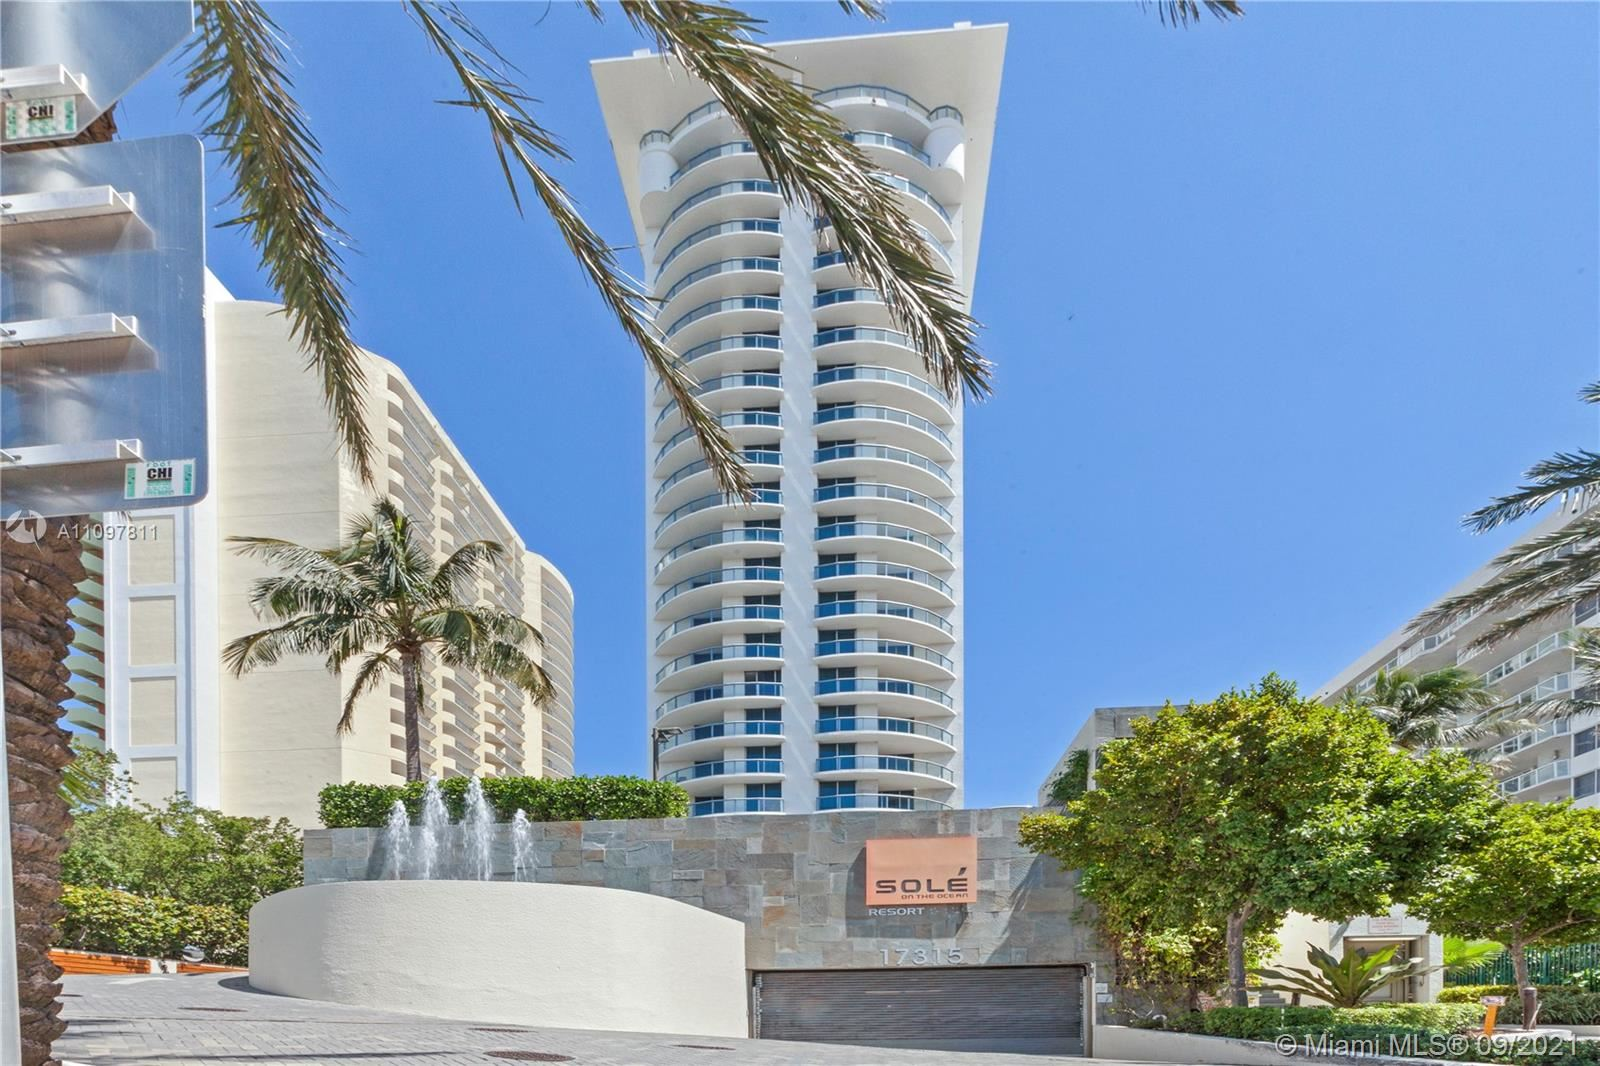 17315 Collins Ave #1004, Sunny Isles, FL 33160 - #: A11097811